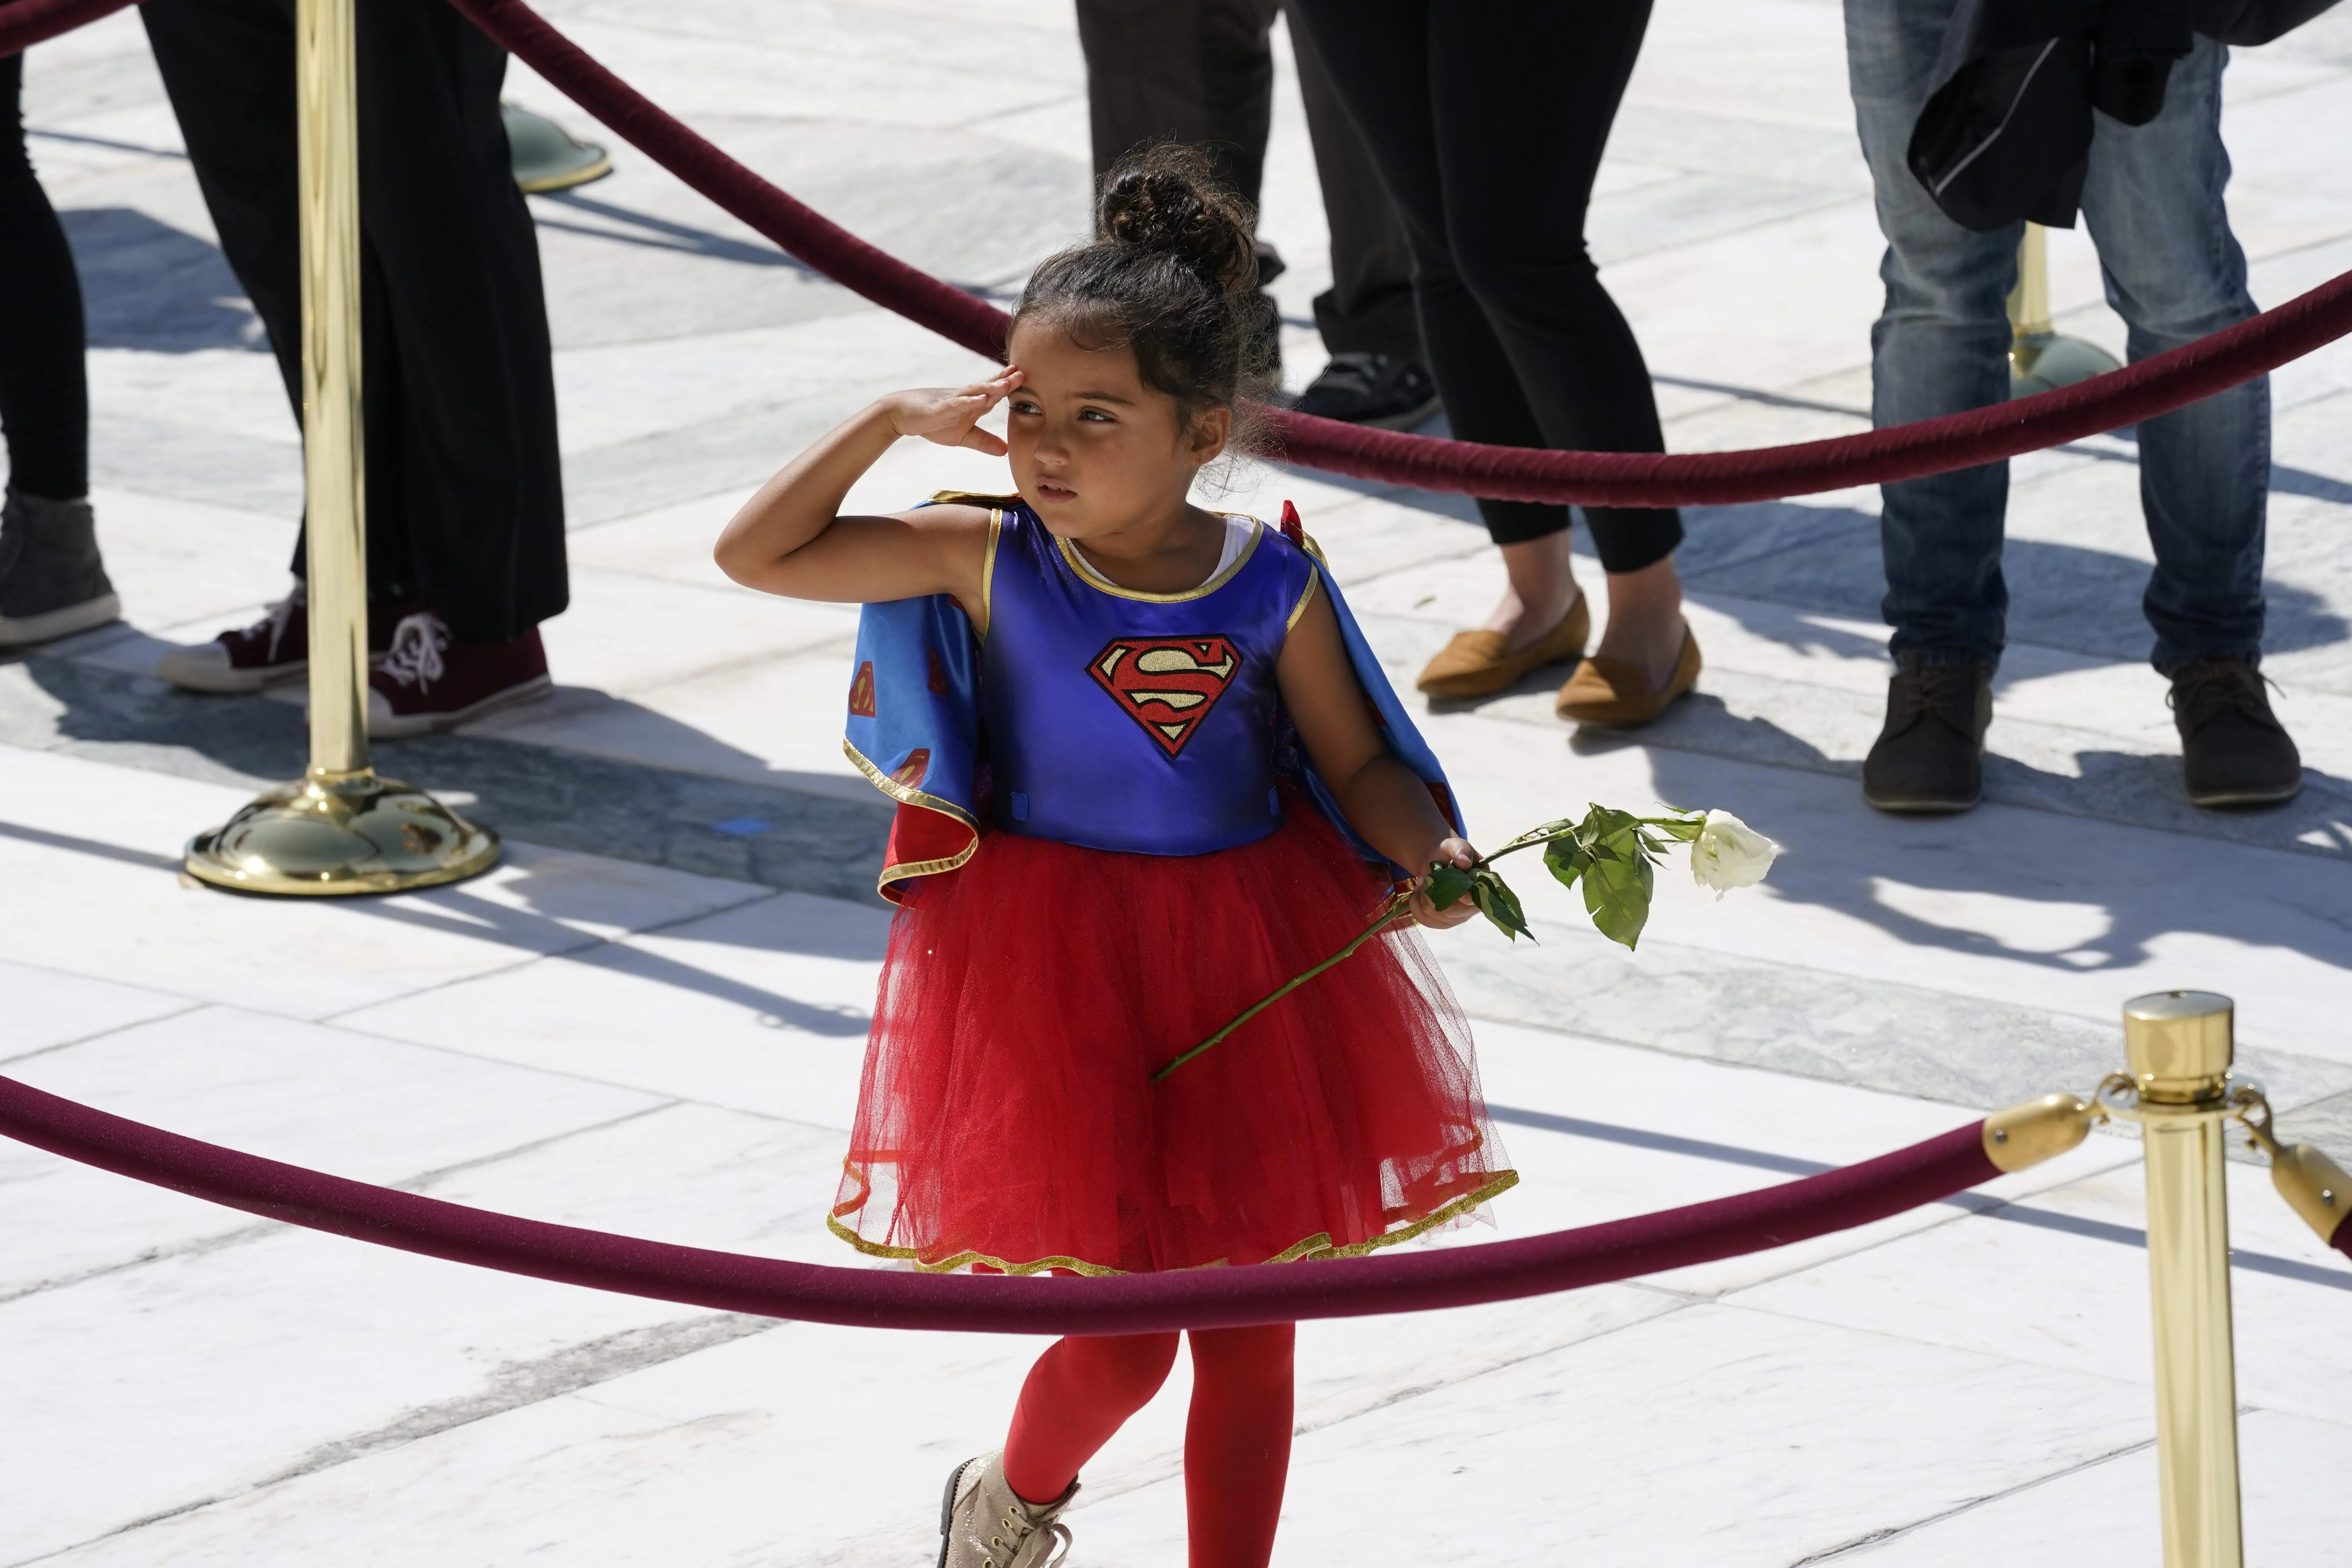 A child in a Supergirl costume pays respects as Associate Justice Ruth Bader Ginsburg lies in repose in front of the U.S. Supreme Court in Washington, D.C., on Sept. 23.